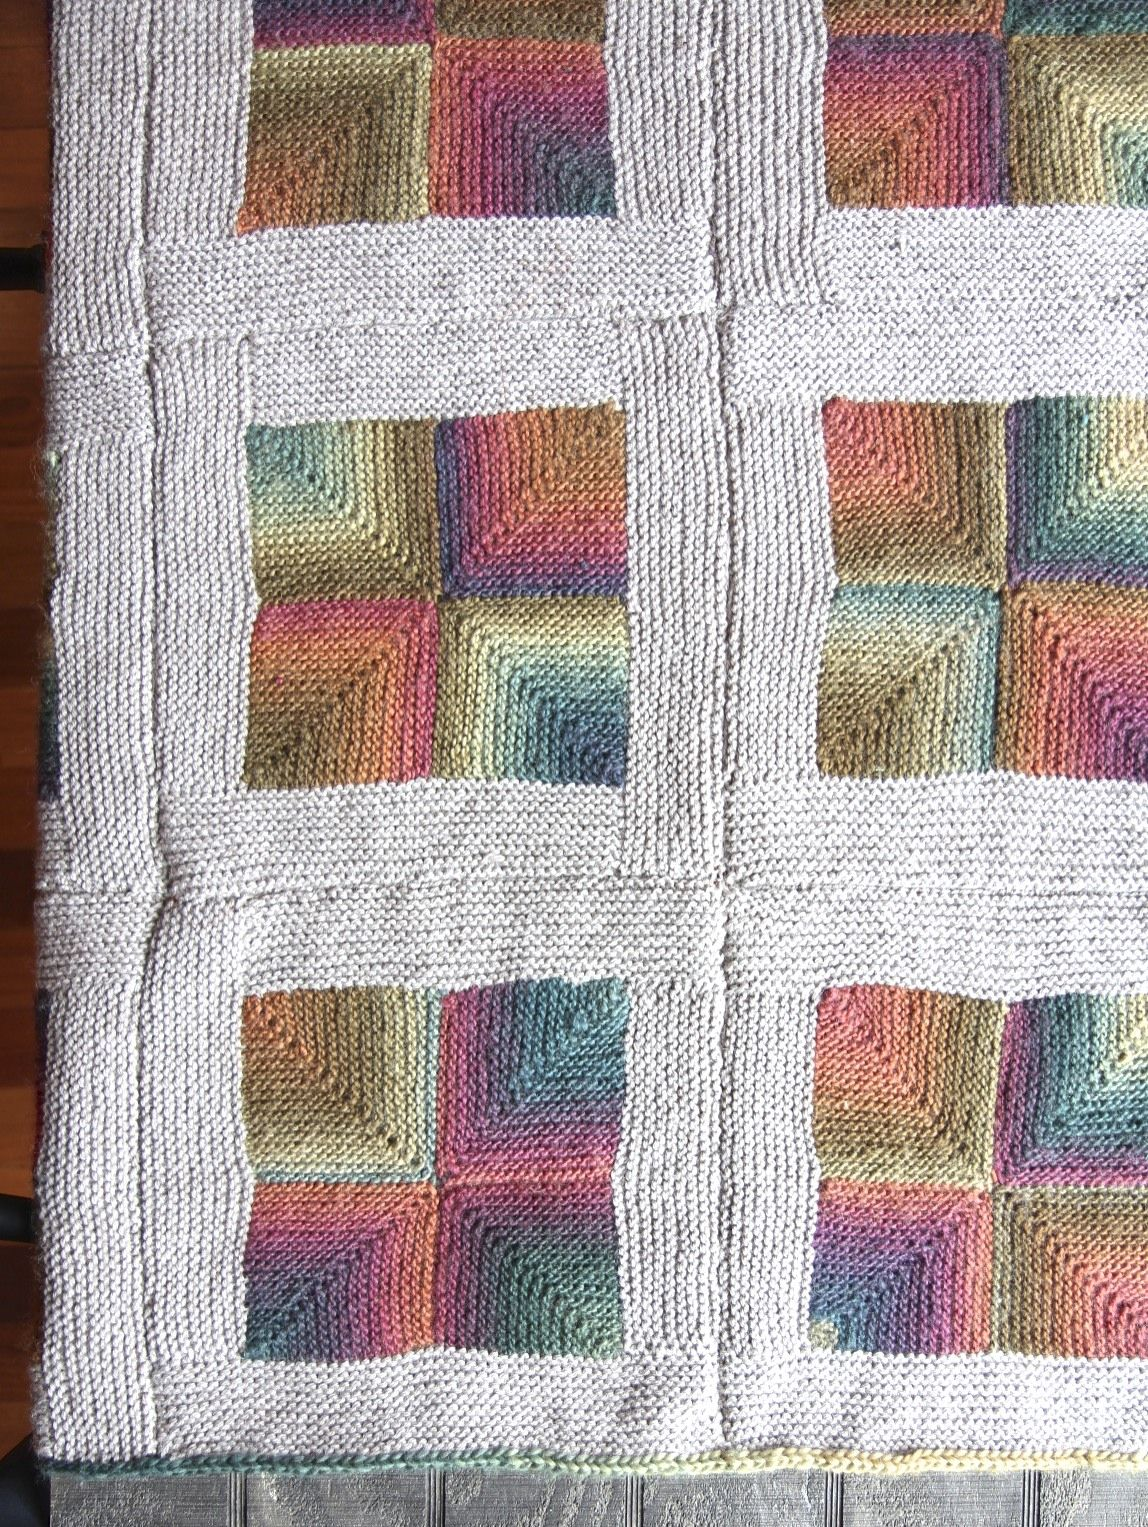 This mitered square blanket looks like a nightmare to sew ...